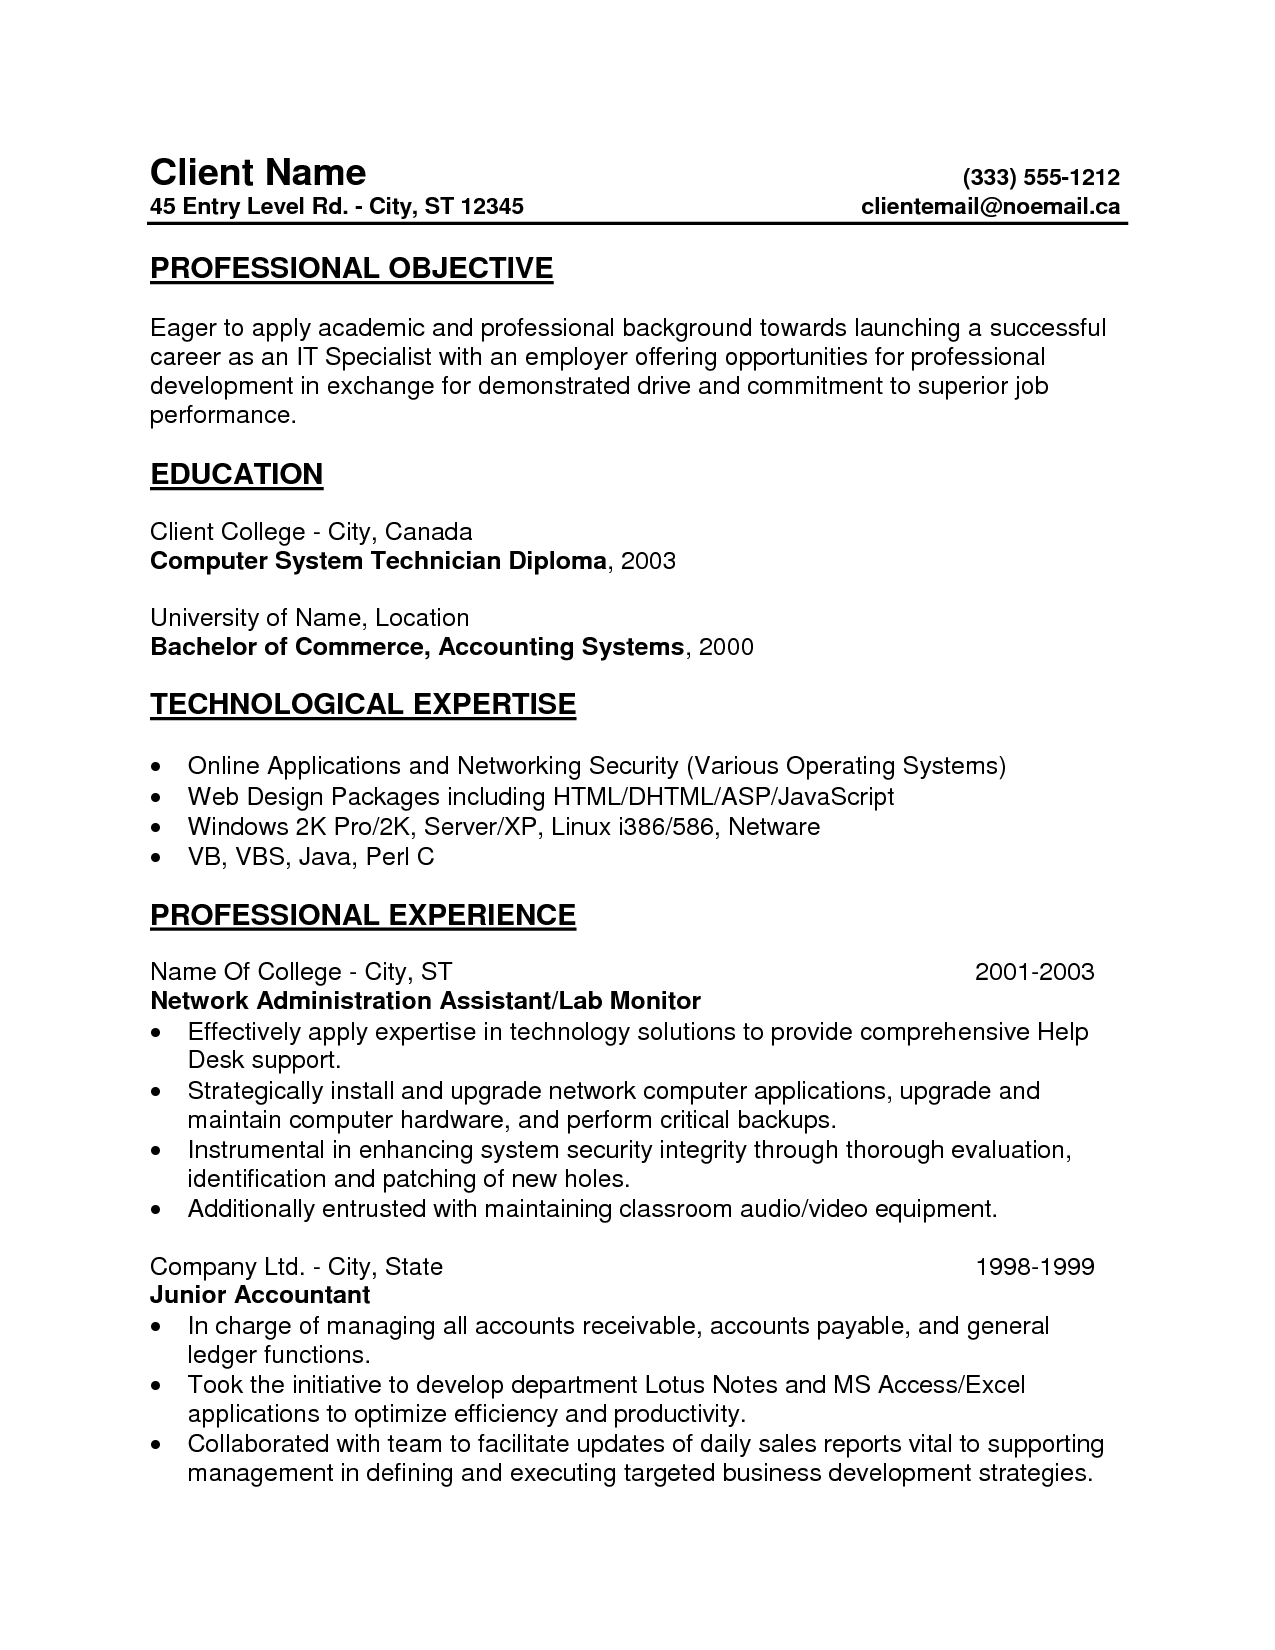 Sample Resume Dental Assistant Entry Level Dental Professional Objective ...  Sample Of Resume Objective